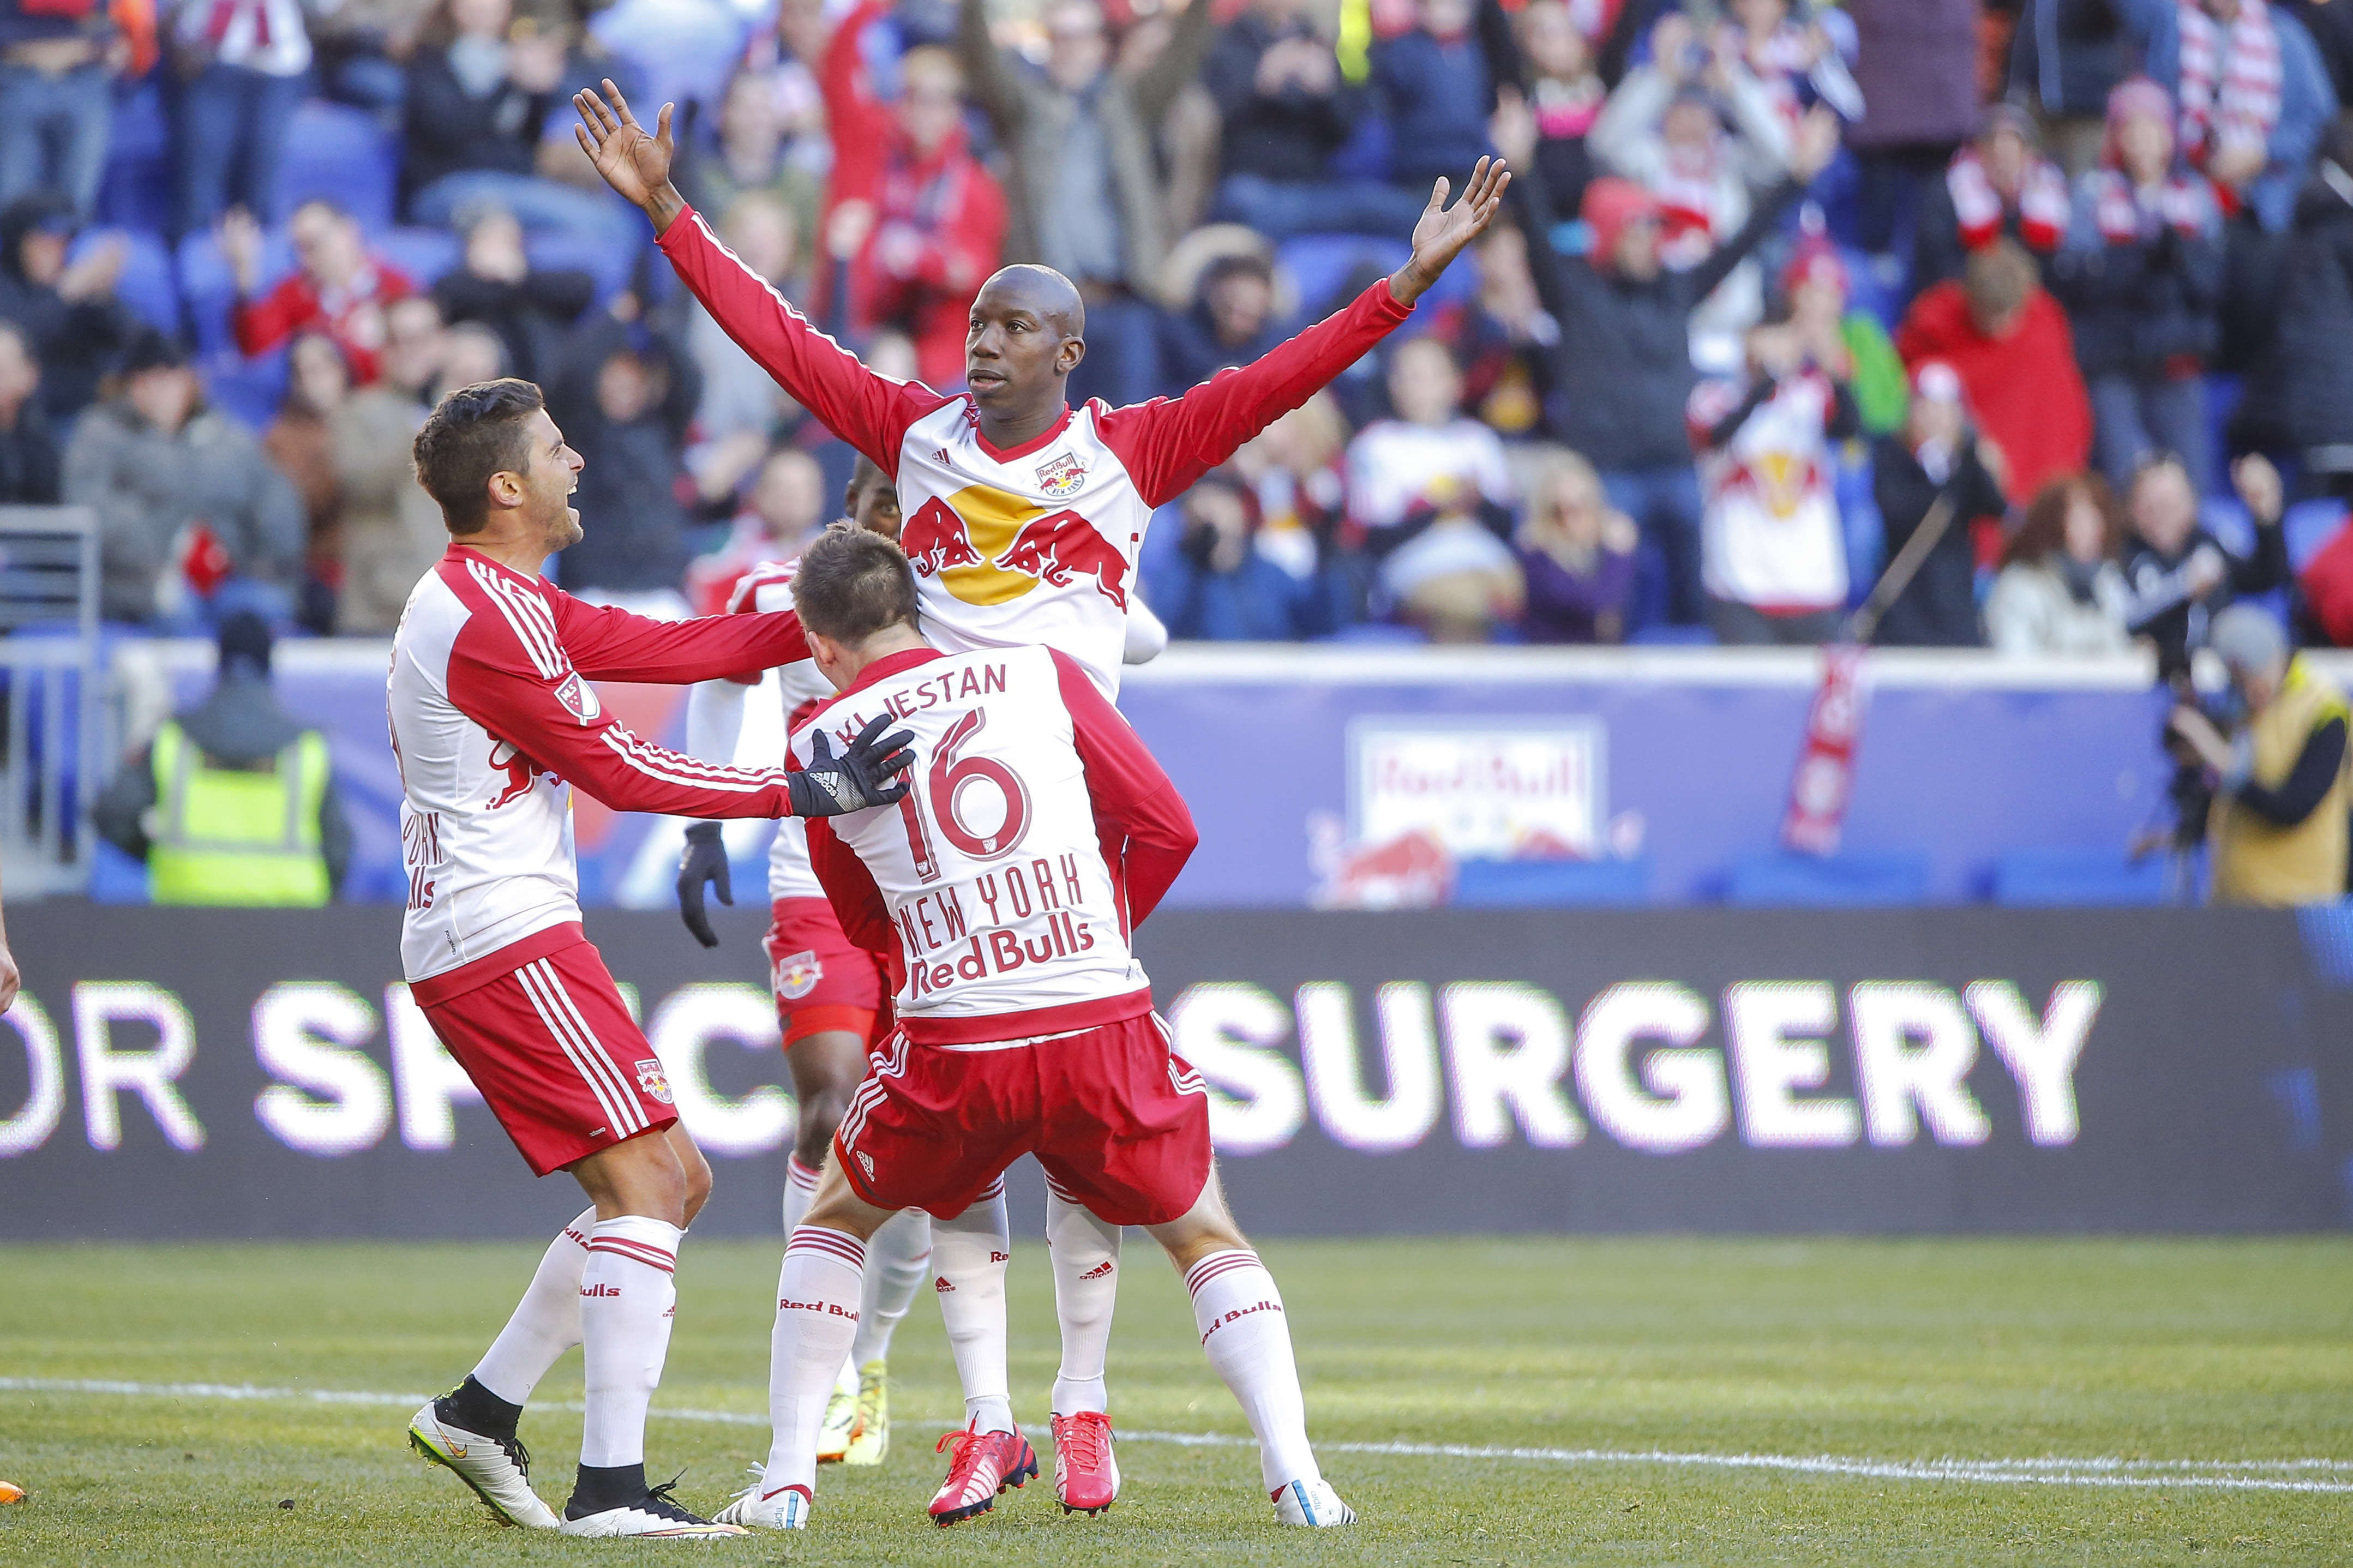 New York red Bulls striker Bradley Wright-Phillips will hopefully find his form after topping the FMLS points category in week three.